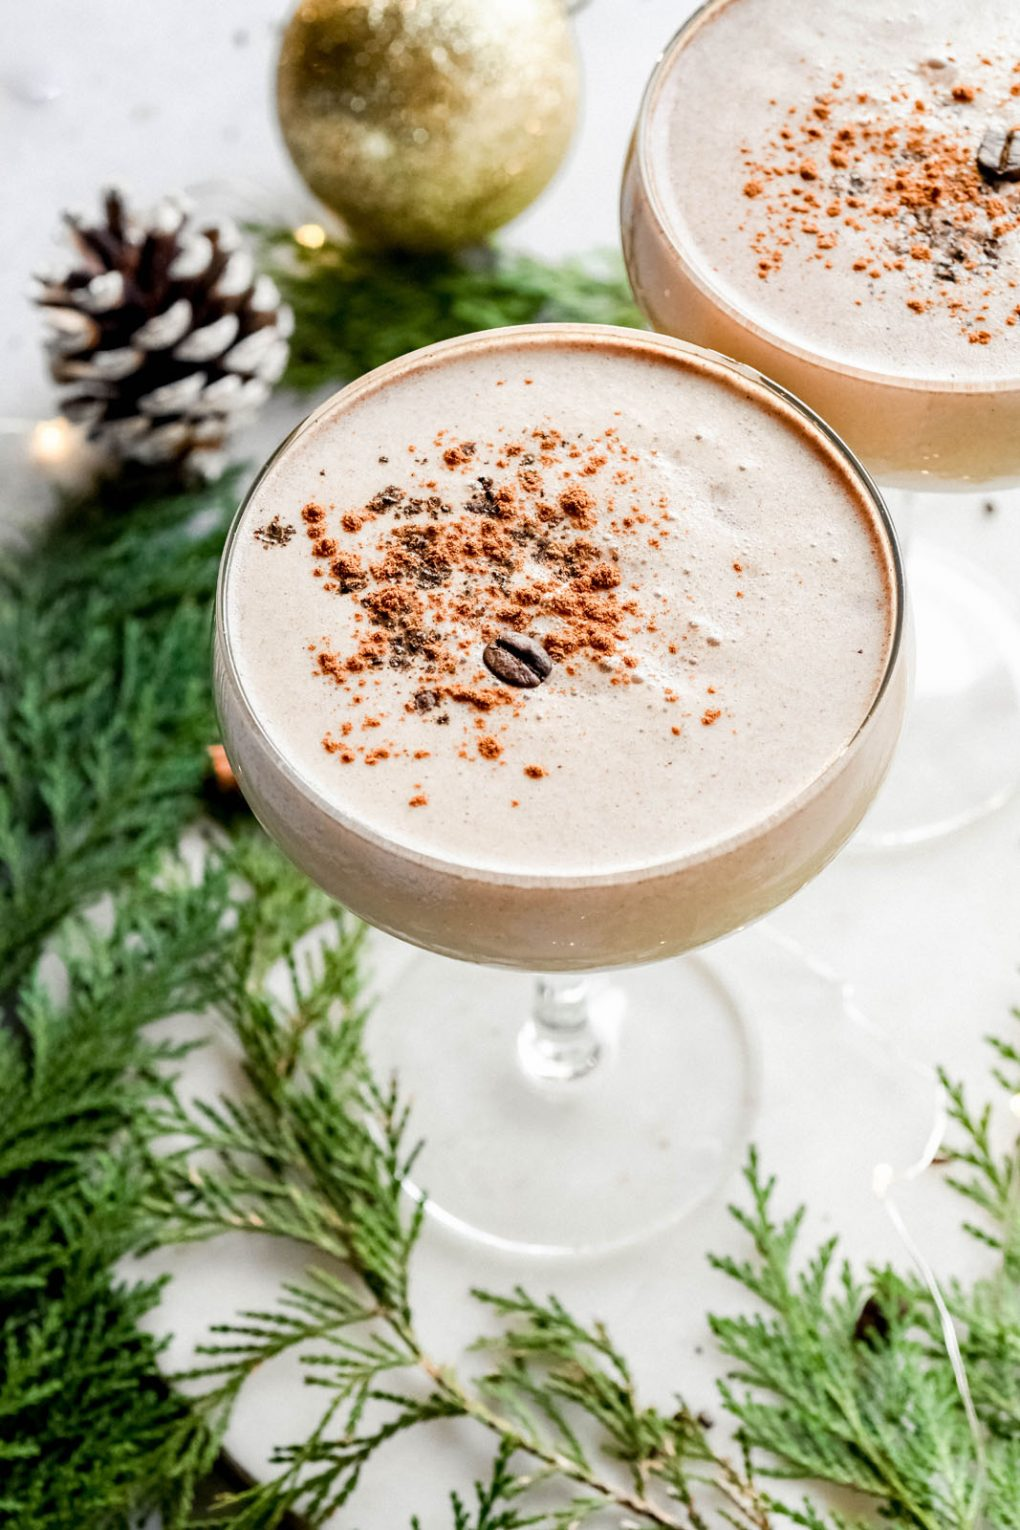 45 degree angle shot of a creamy eggnog espresso martini. Topped with cinnamon and a coffee bean. On a light colored background surrounded by some cedar branches, pine cones, and tiny little white string lights.